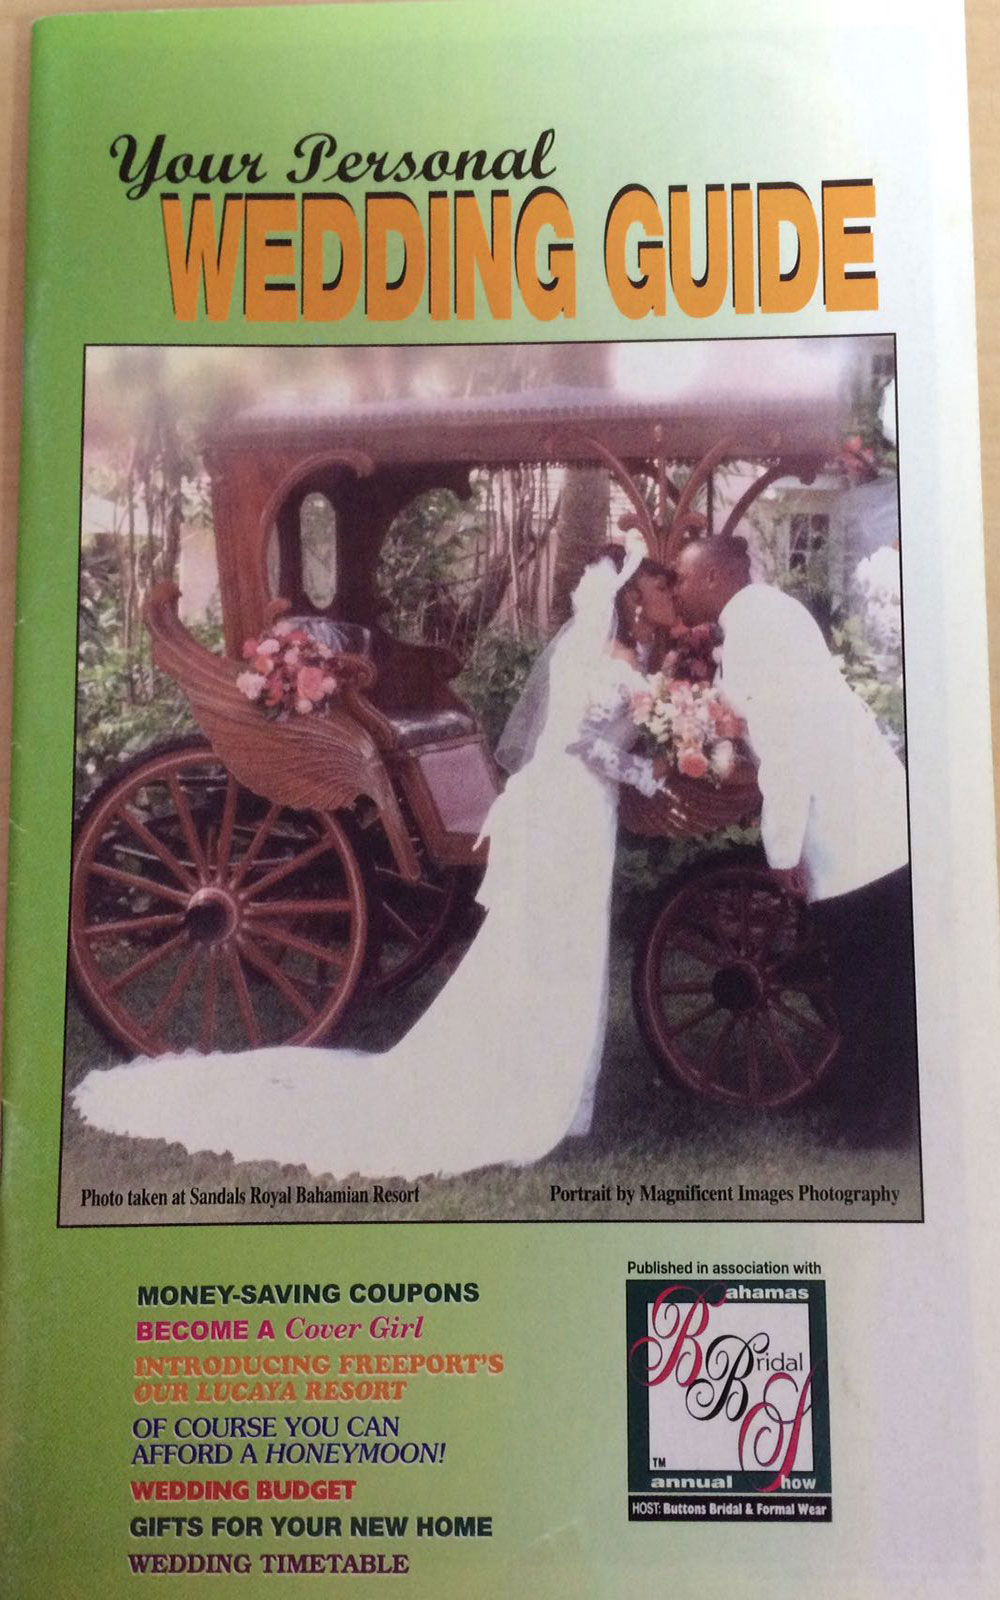 The Wedding Guide 2001-2002